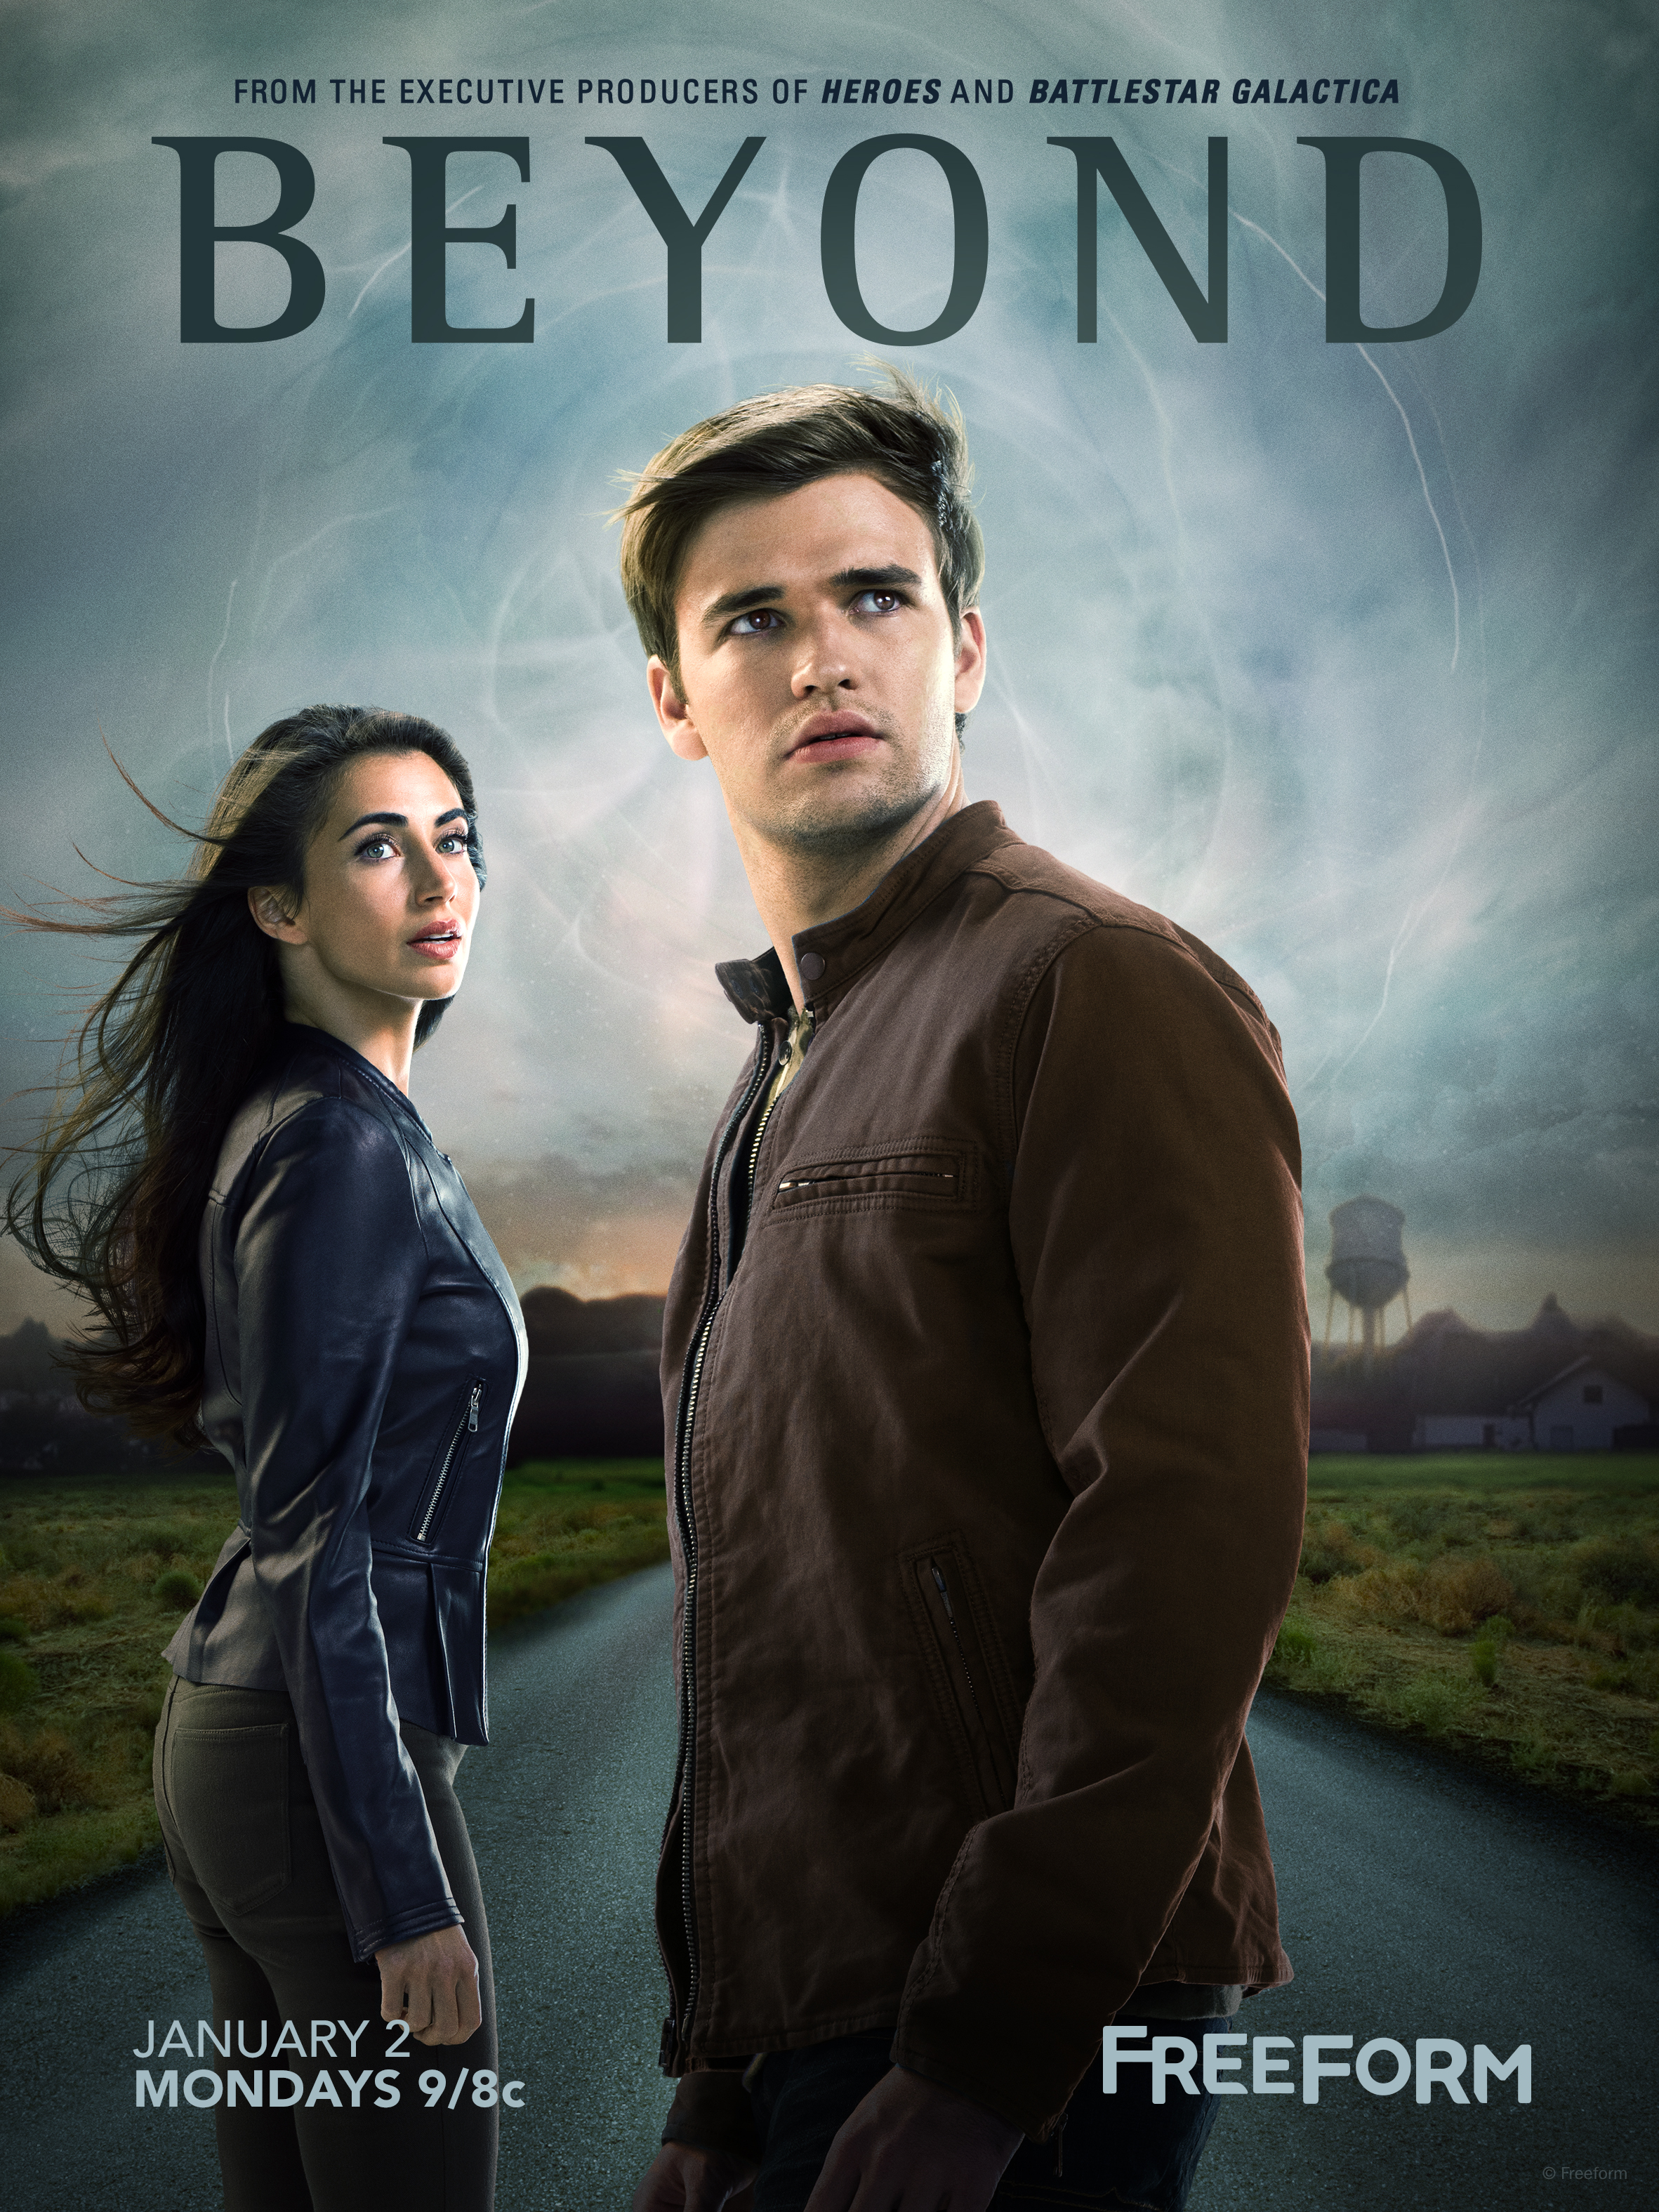 Beyond - Exclusive Update: The Official Poster For Beyond Is Here And We Are Loving It! - 1001